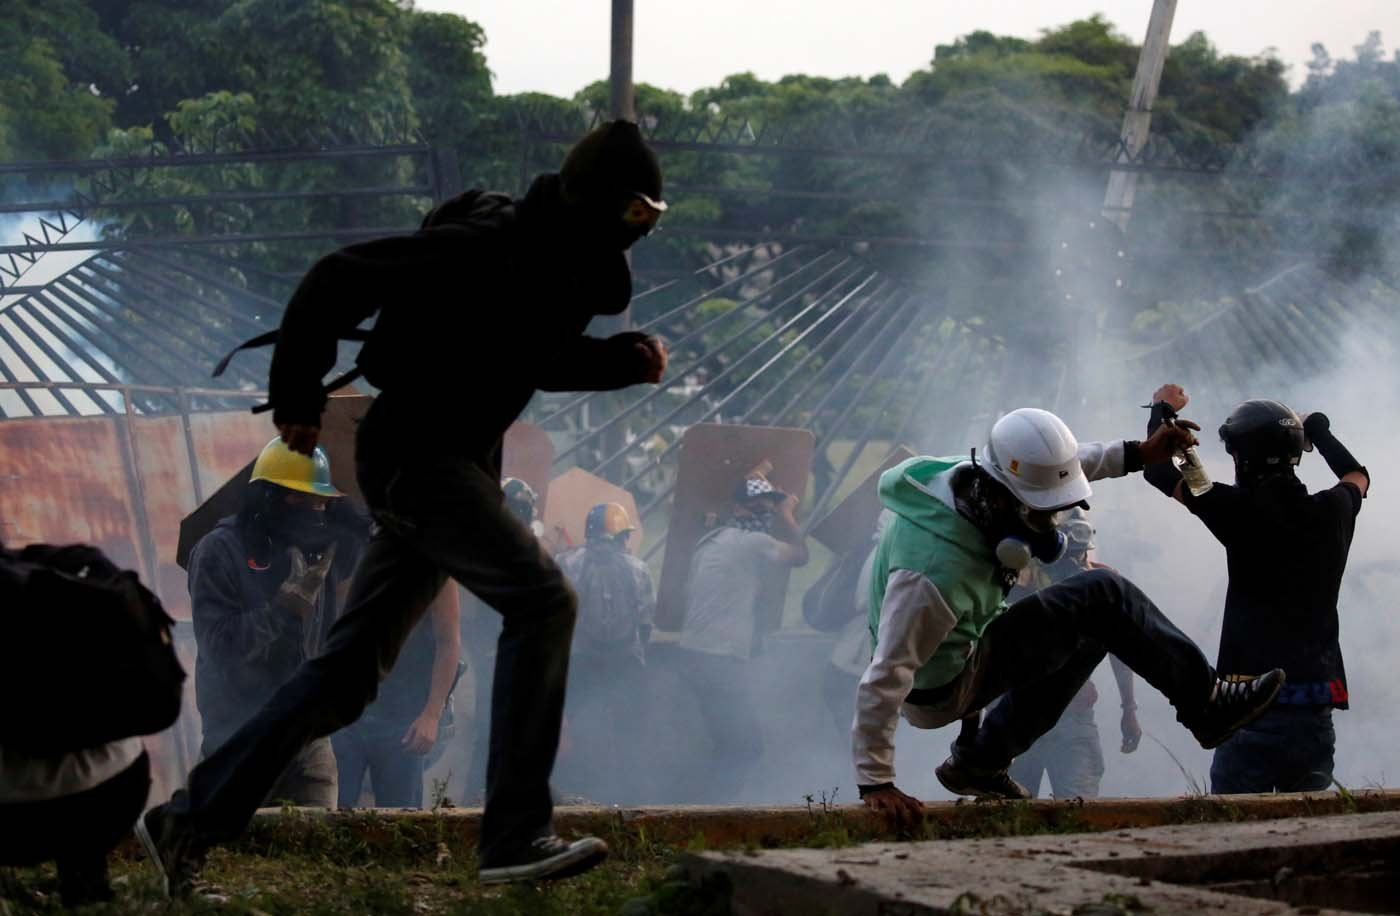 Military police take position at an air base as opposition supporters clash with them while rallying against President Nicolas Maduro in Caracas, Venezuela, May 8, 2017. REUTERS/Carlos Garcia Rawlins